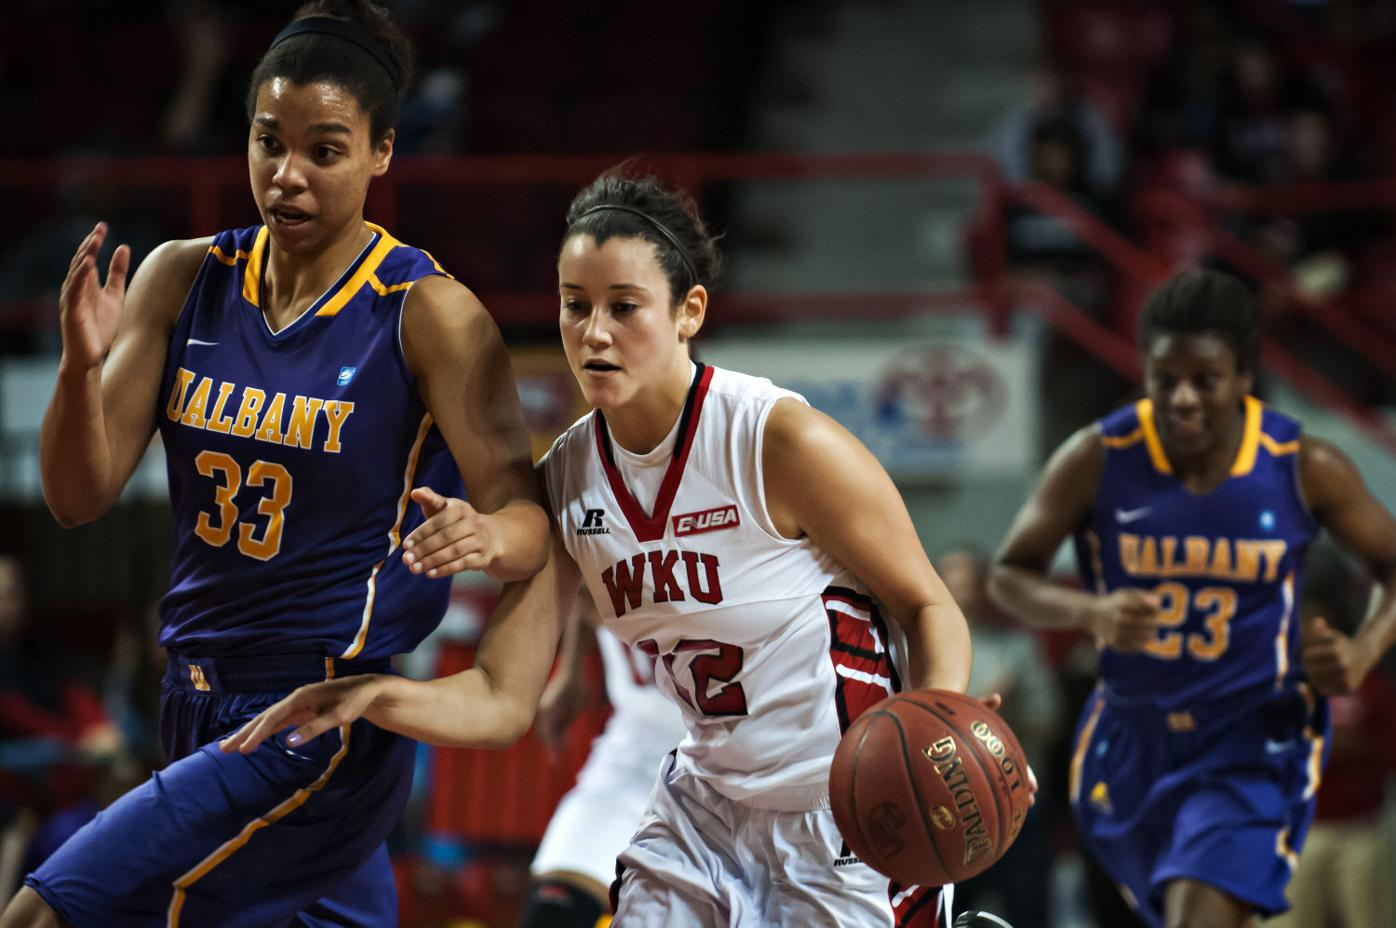 Lady Toppers Win 63-54 Over Albany